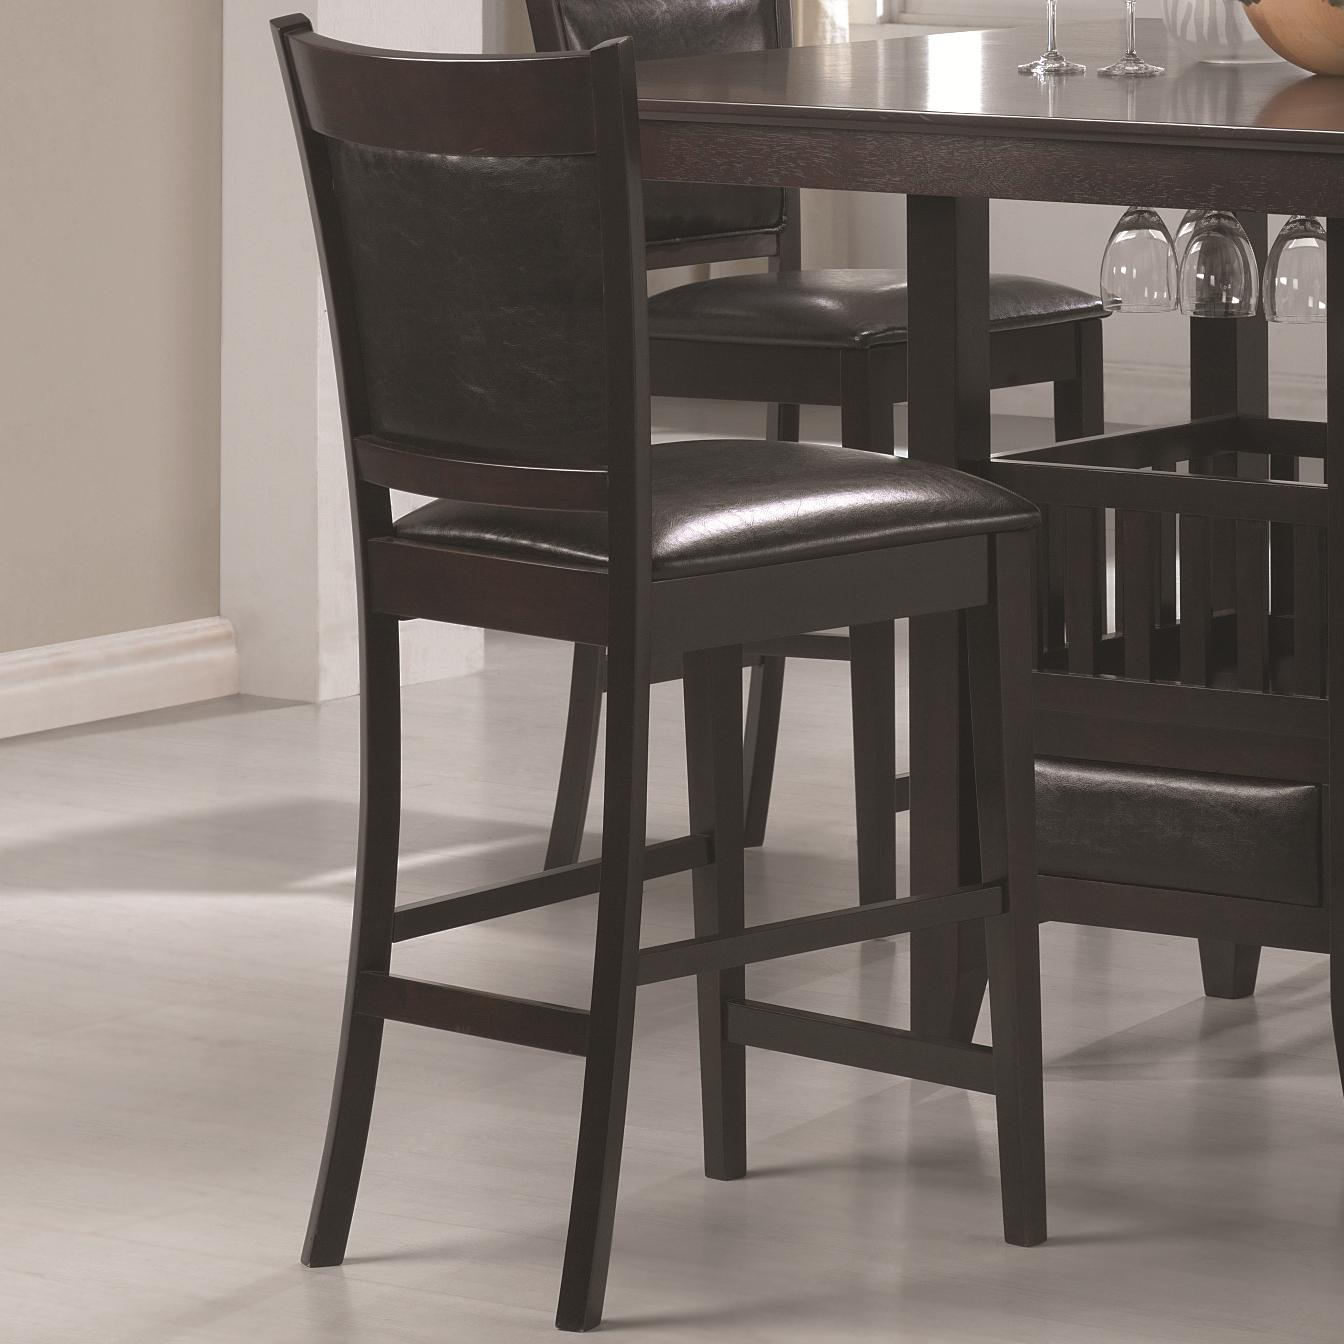 Bar Height Dining Chairs Coaster Jaden Counter Height Stool With Vinyl Padded Seat